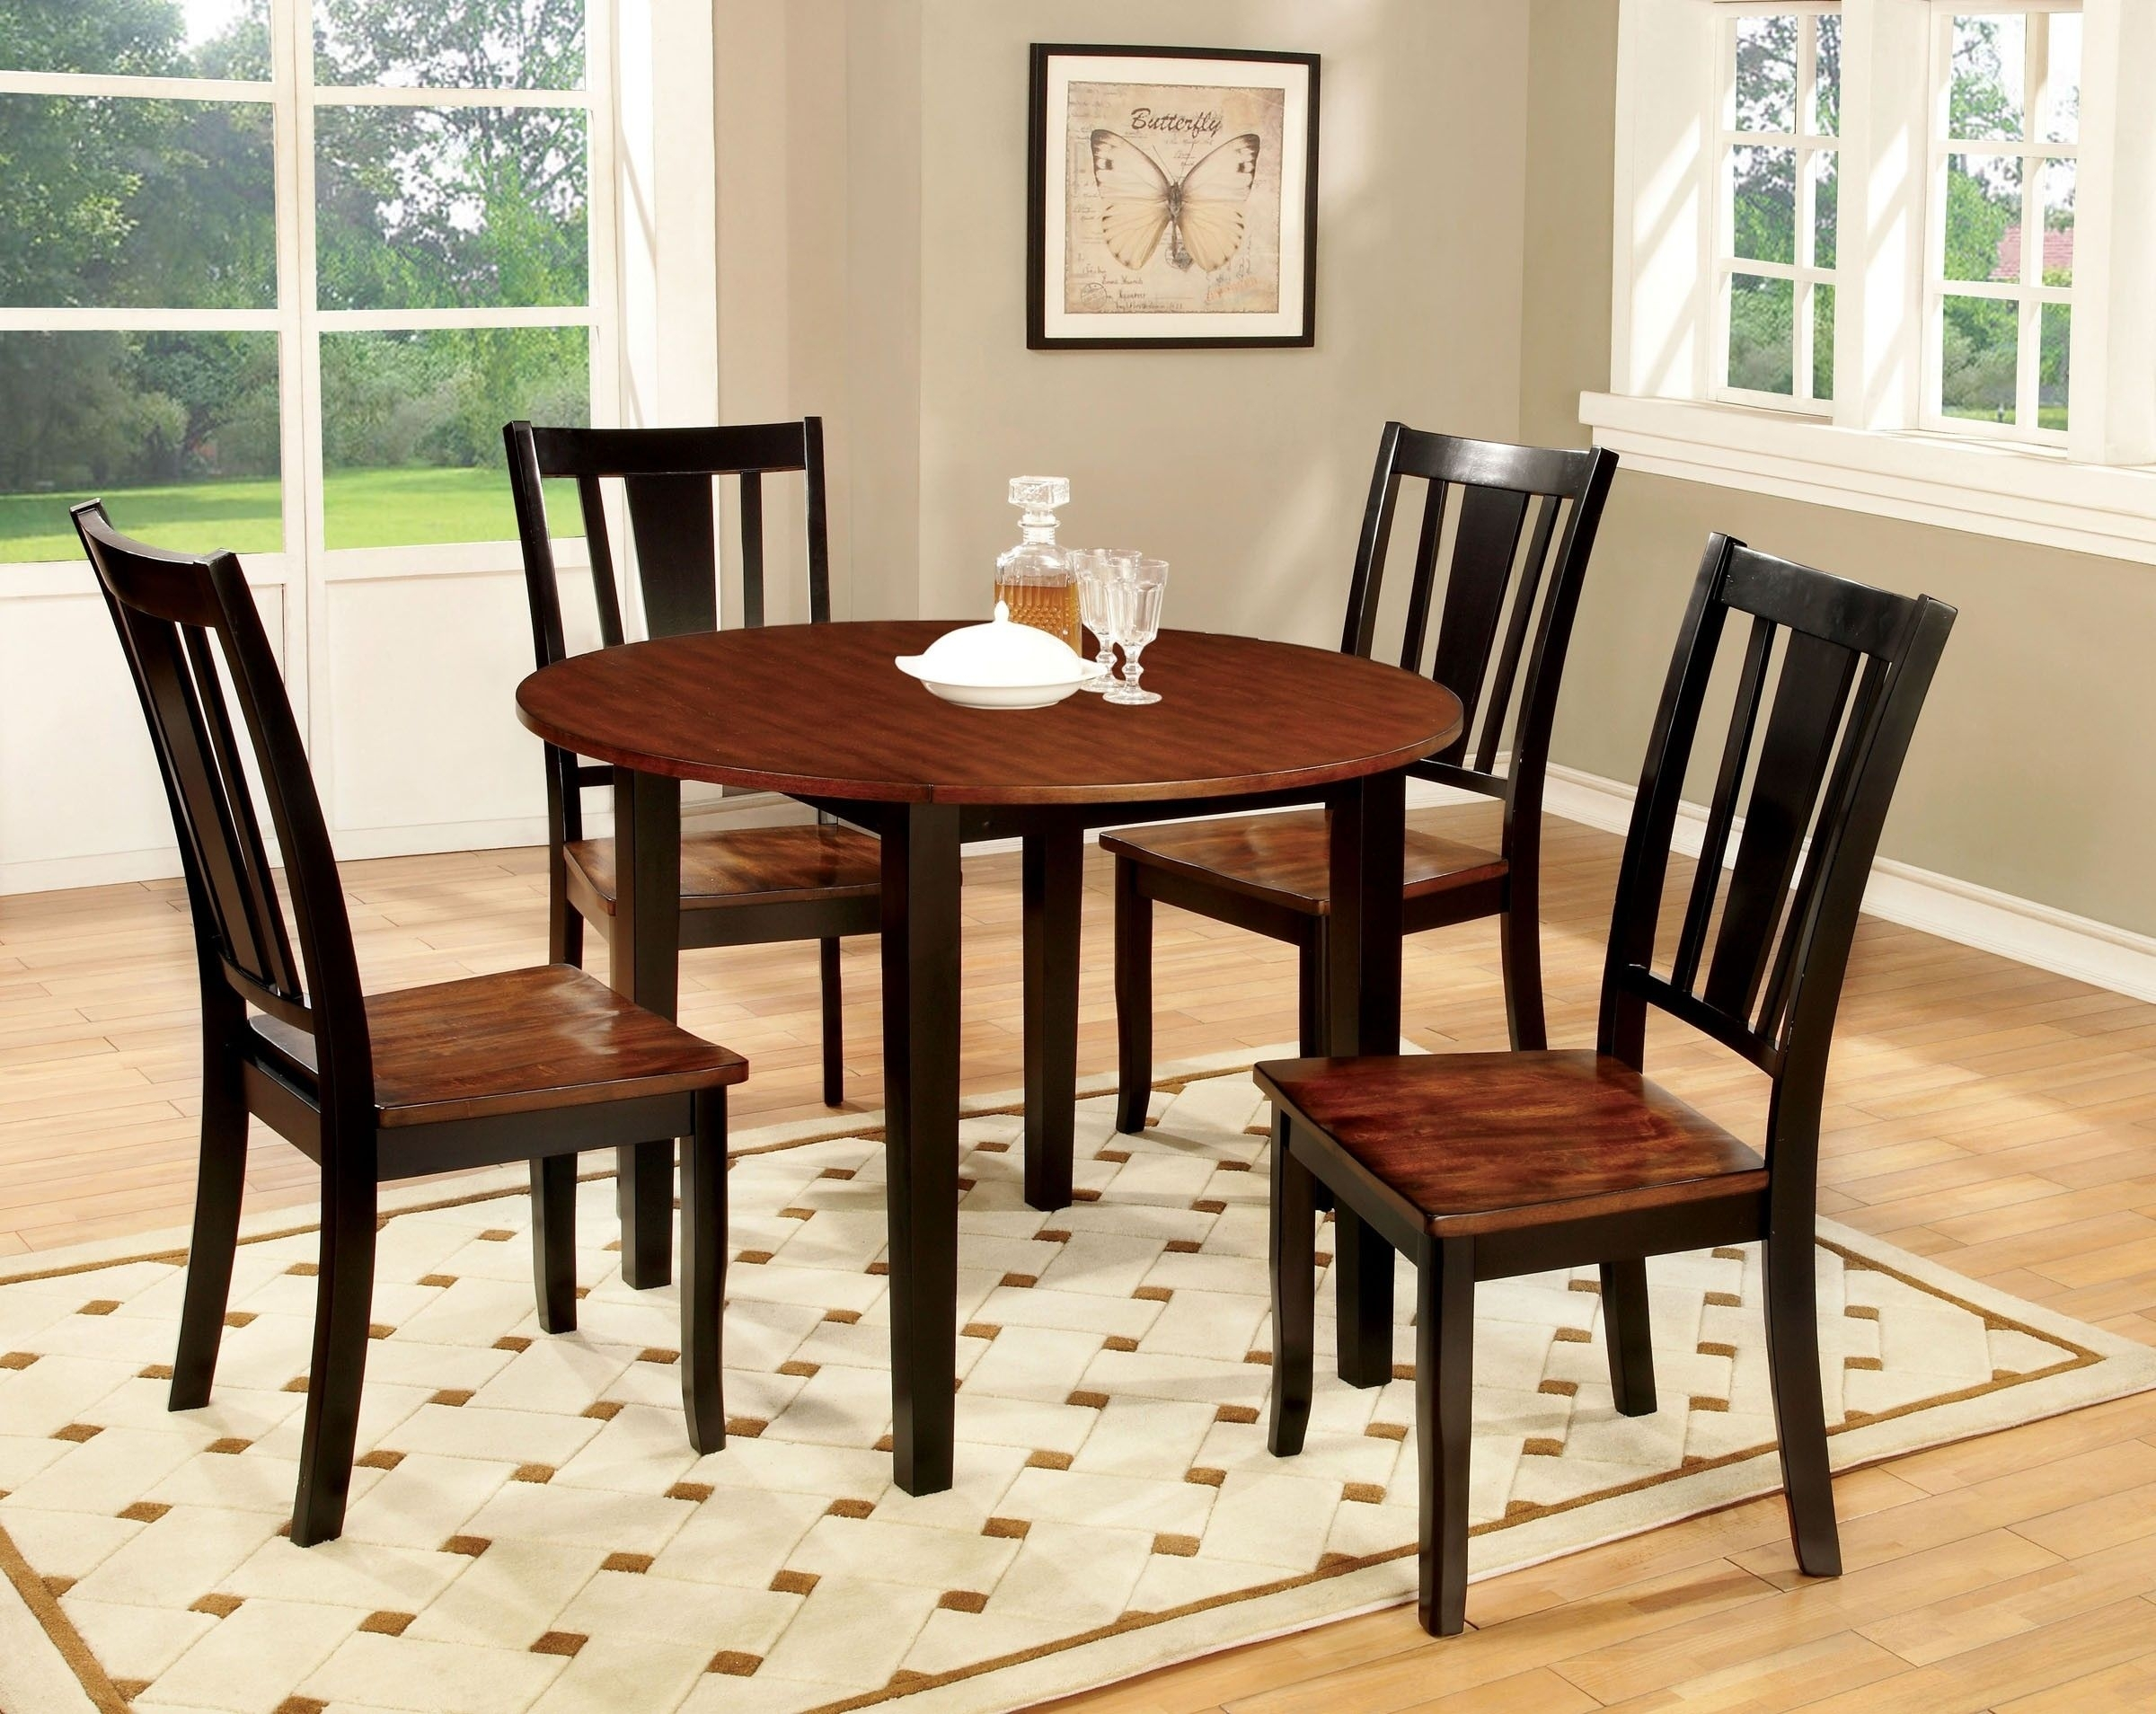 Simple Black And Cherry Dining Table | Elegant Black And Cherry Intended For Newest Caden 6 Piece Rectangle Dining Sets (Image 19 of 20)